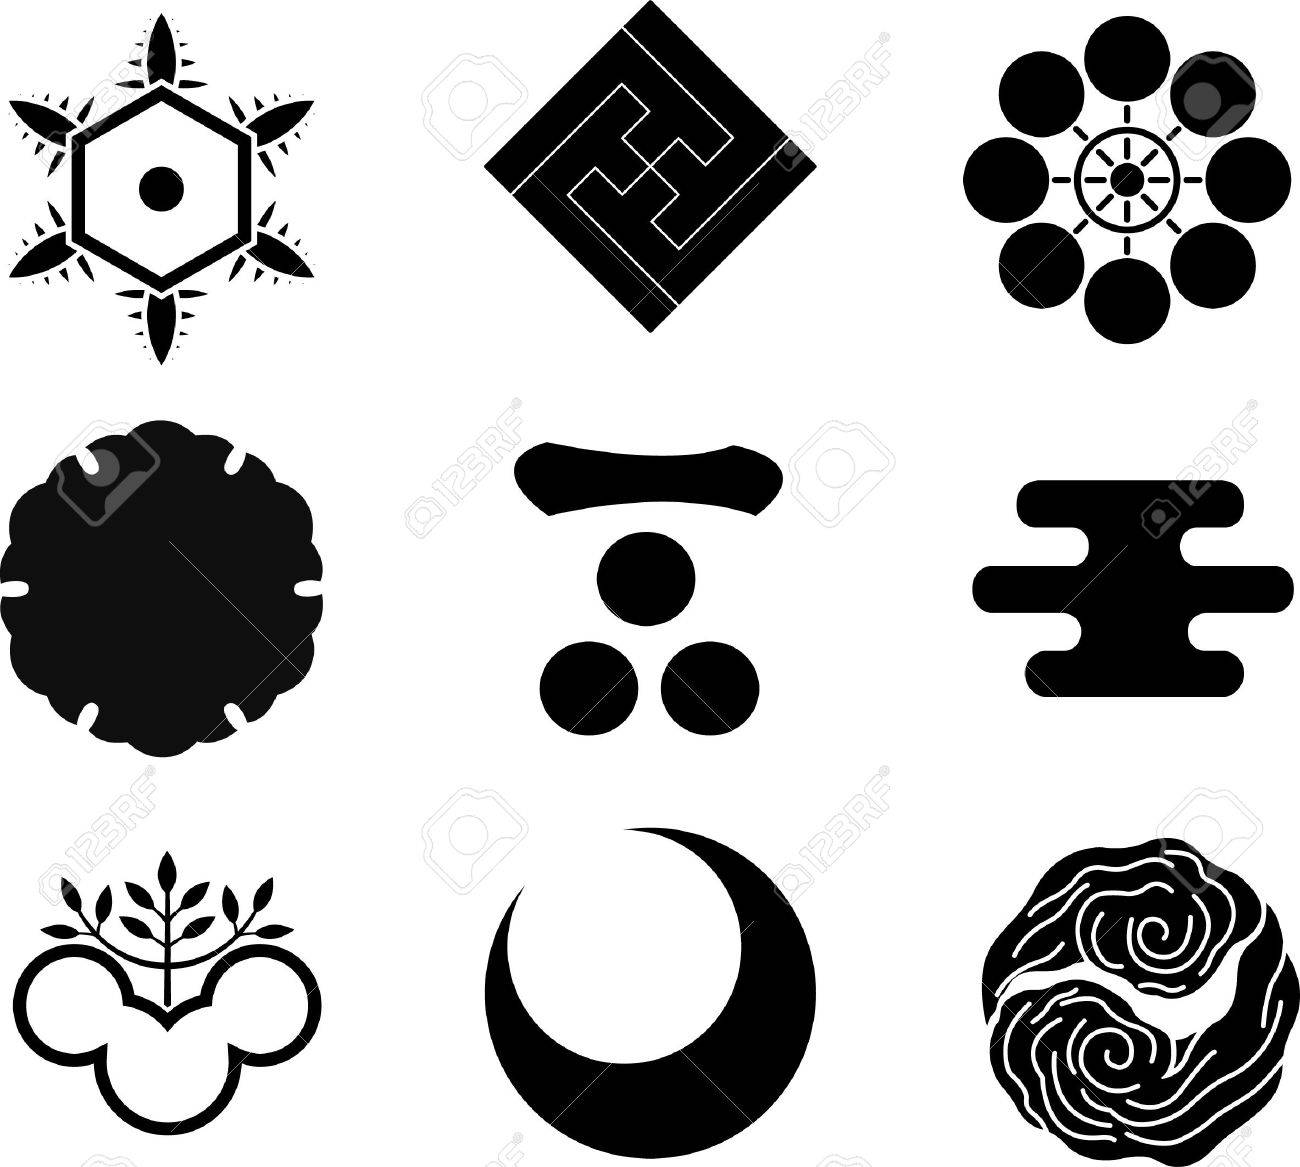 Japanese family crests royalty free cliparts vectors and stock japanese family crests stock vector 10199984 biocorpaavc Gallery